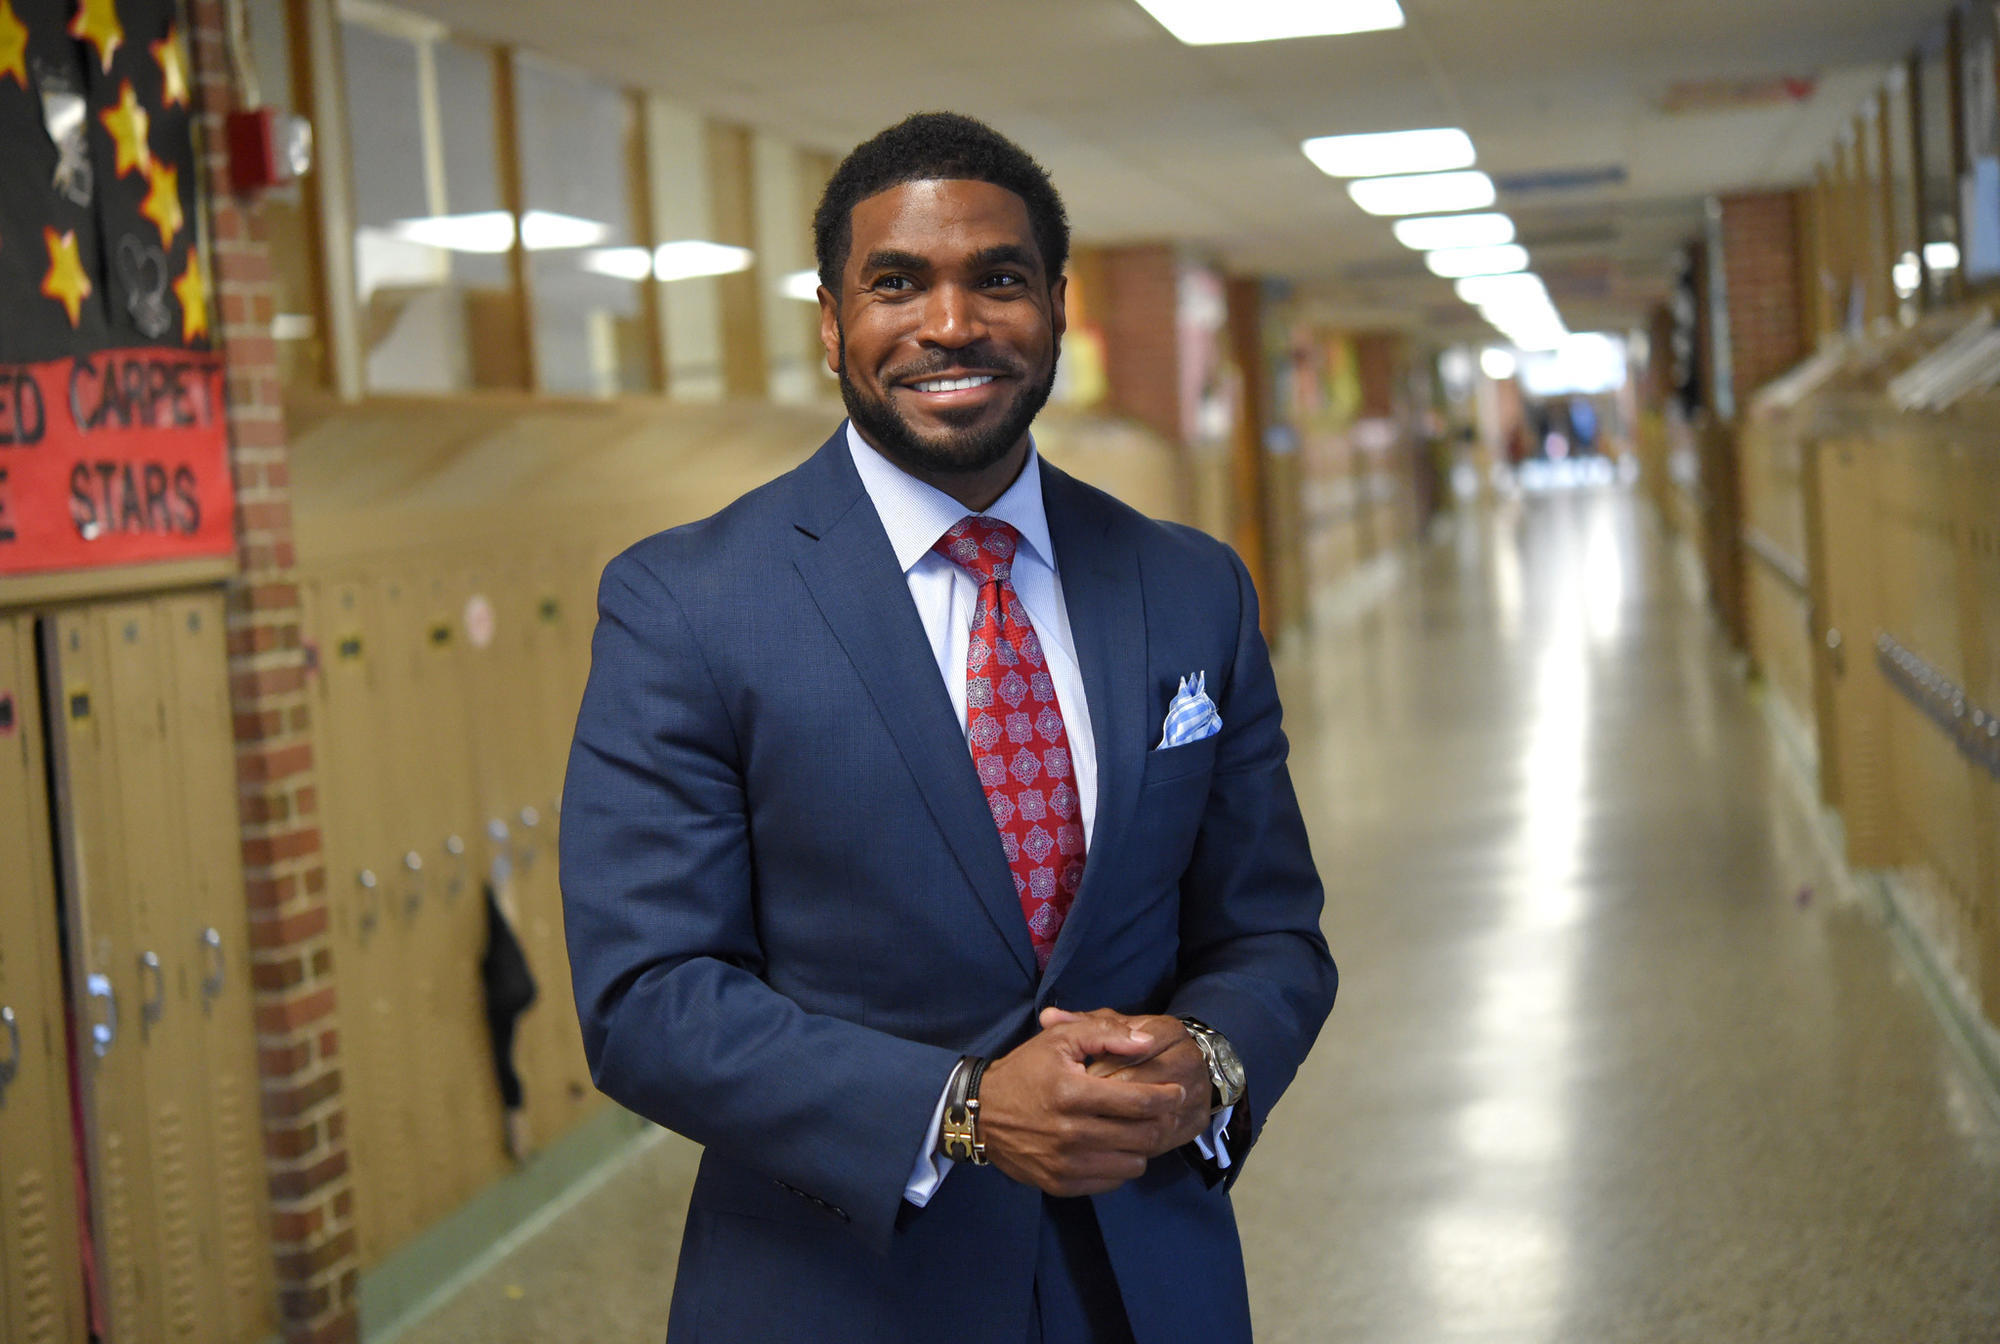 As superintendent, Dallas Dance spent more than a third of 2016 school days traveling out of state